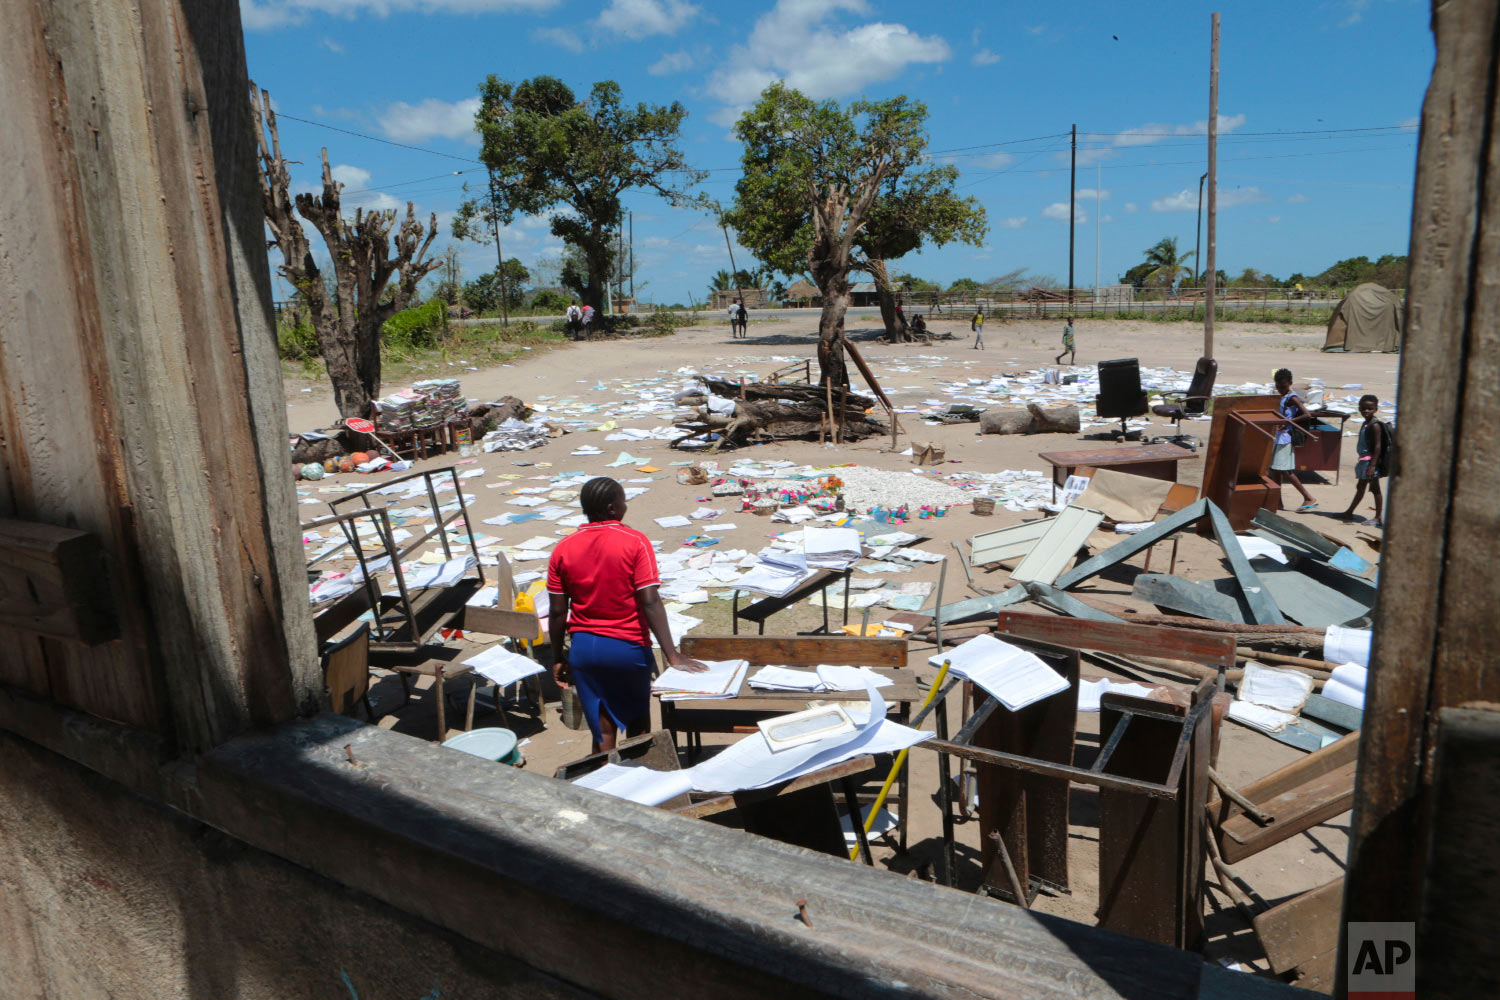 School books at Inchope primary school in Inchope, Mozambique, are left to dry in the sun after the school was damaged by Cyclone Idai, Monday March, 25, 2019. (AP Photo/Tsvangirayi Mukwazhi)